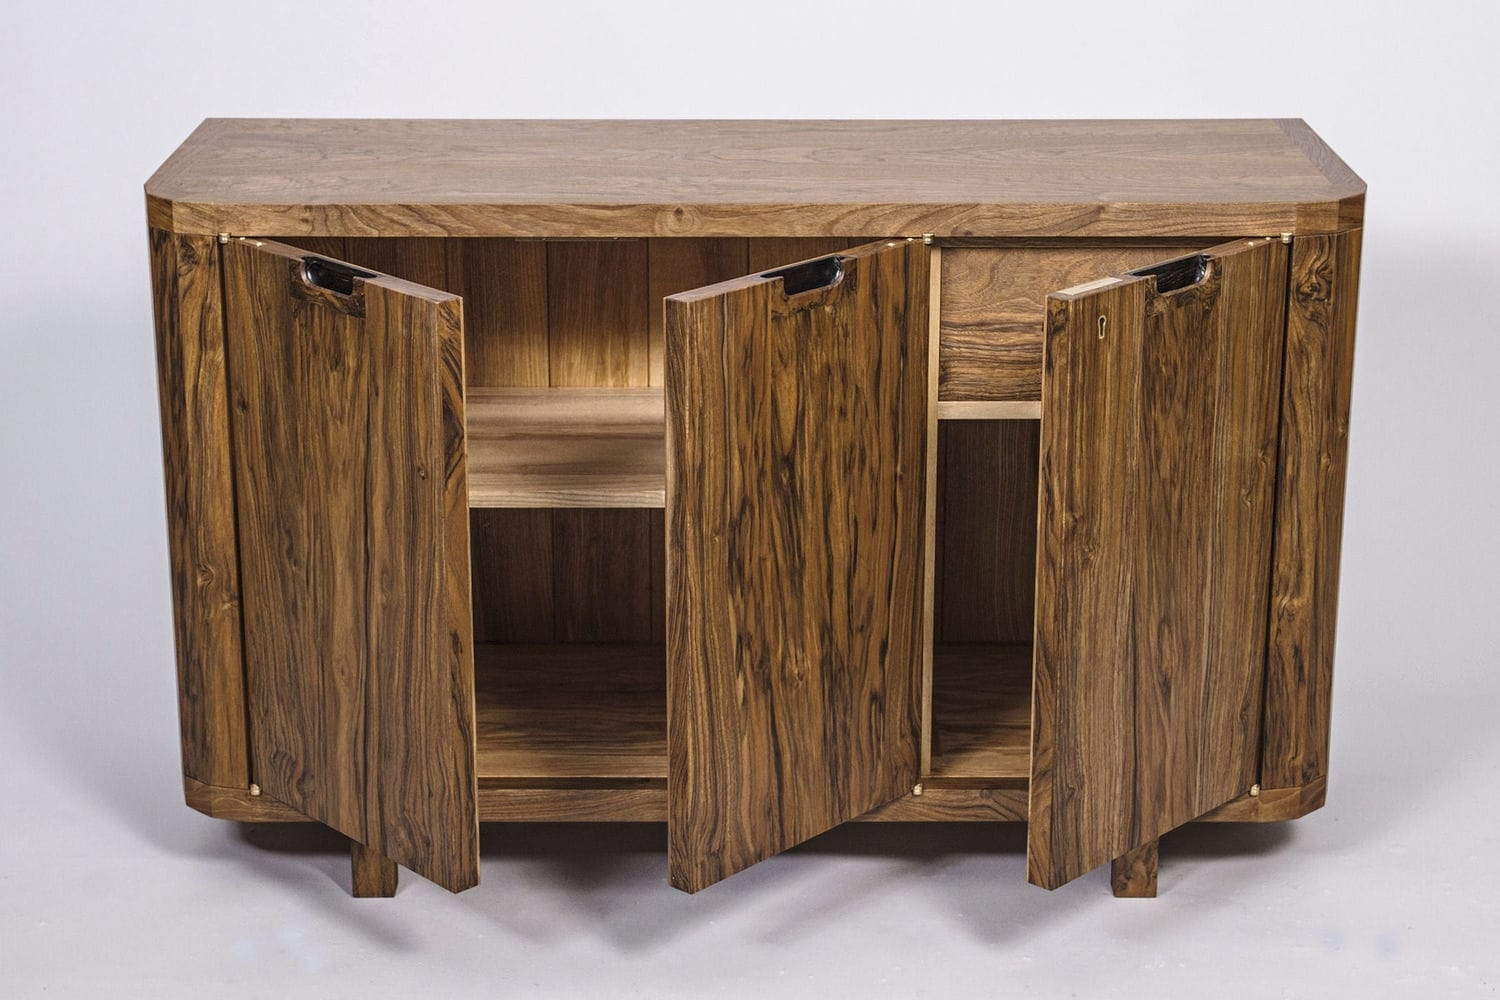 Contemporary Sideboard / Walnut / Ash - Harpenden - Colin Parker pertaining to Walnut Finish Contempo Sideboards (Image 10 of 30)